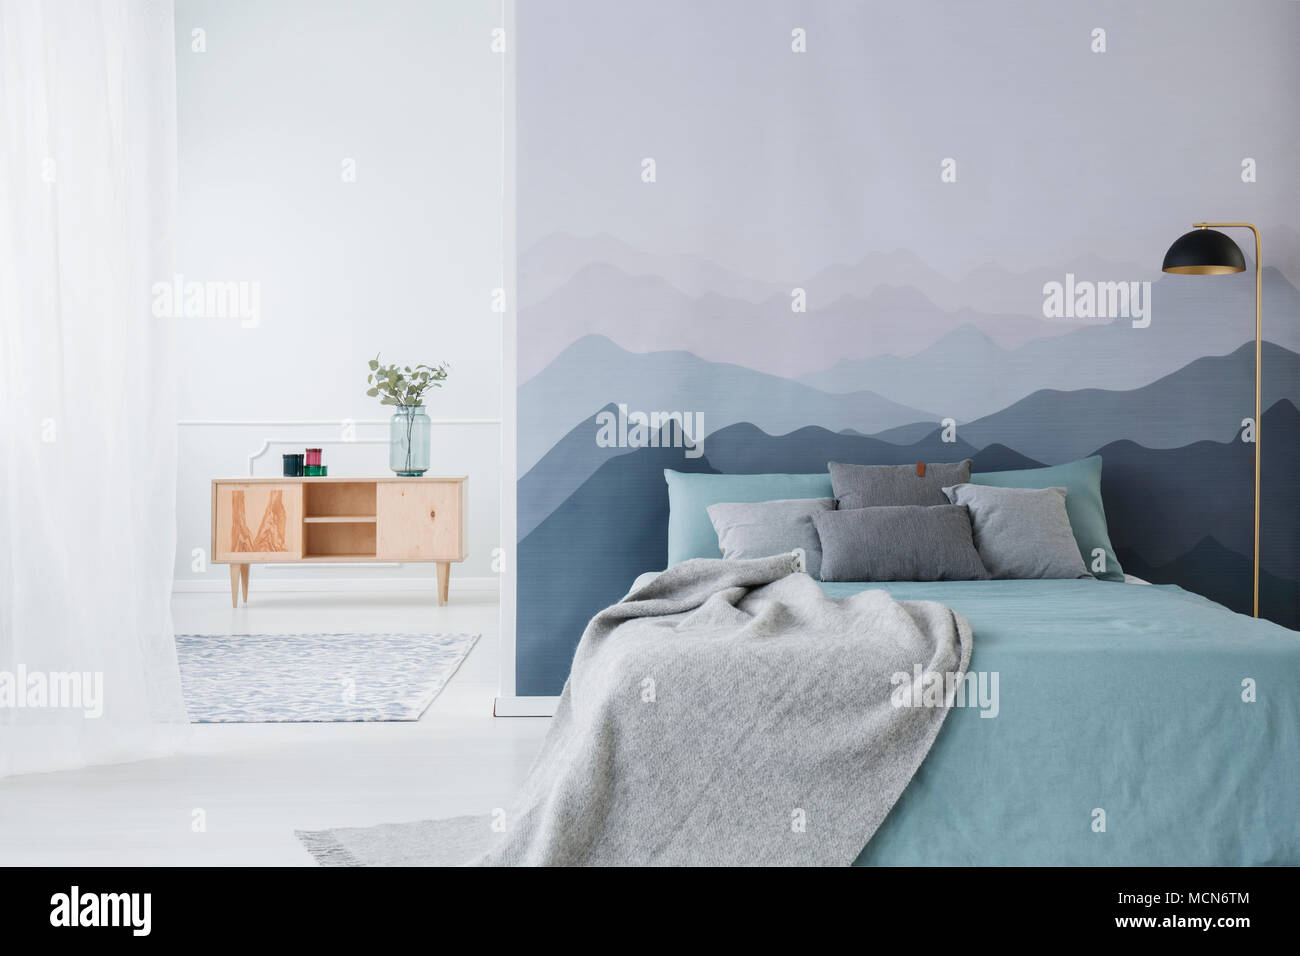 Best Wallpaper Mountain Bedroom - blue-bed-with-grey-blanket-against-mountain-wallpaper-in-simple-bedroom-interior-with-wooden-cupboard-MCN6TM  Collection_73813.jpg